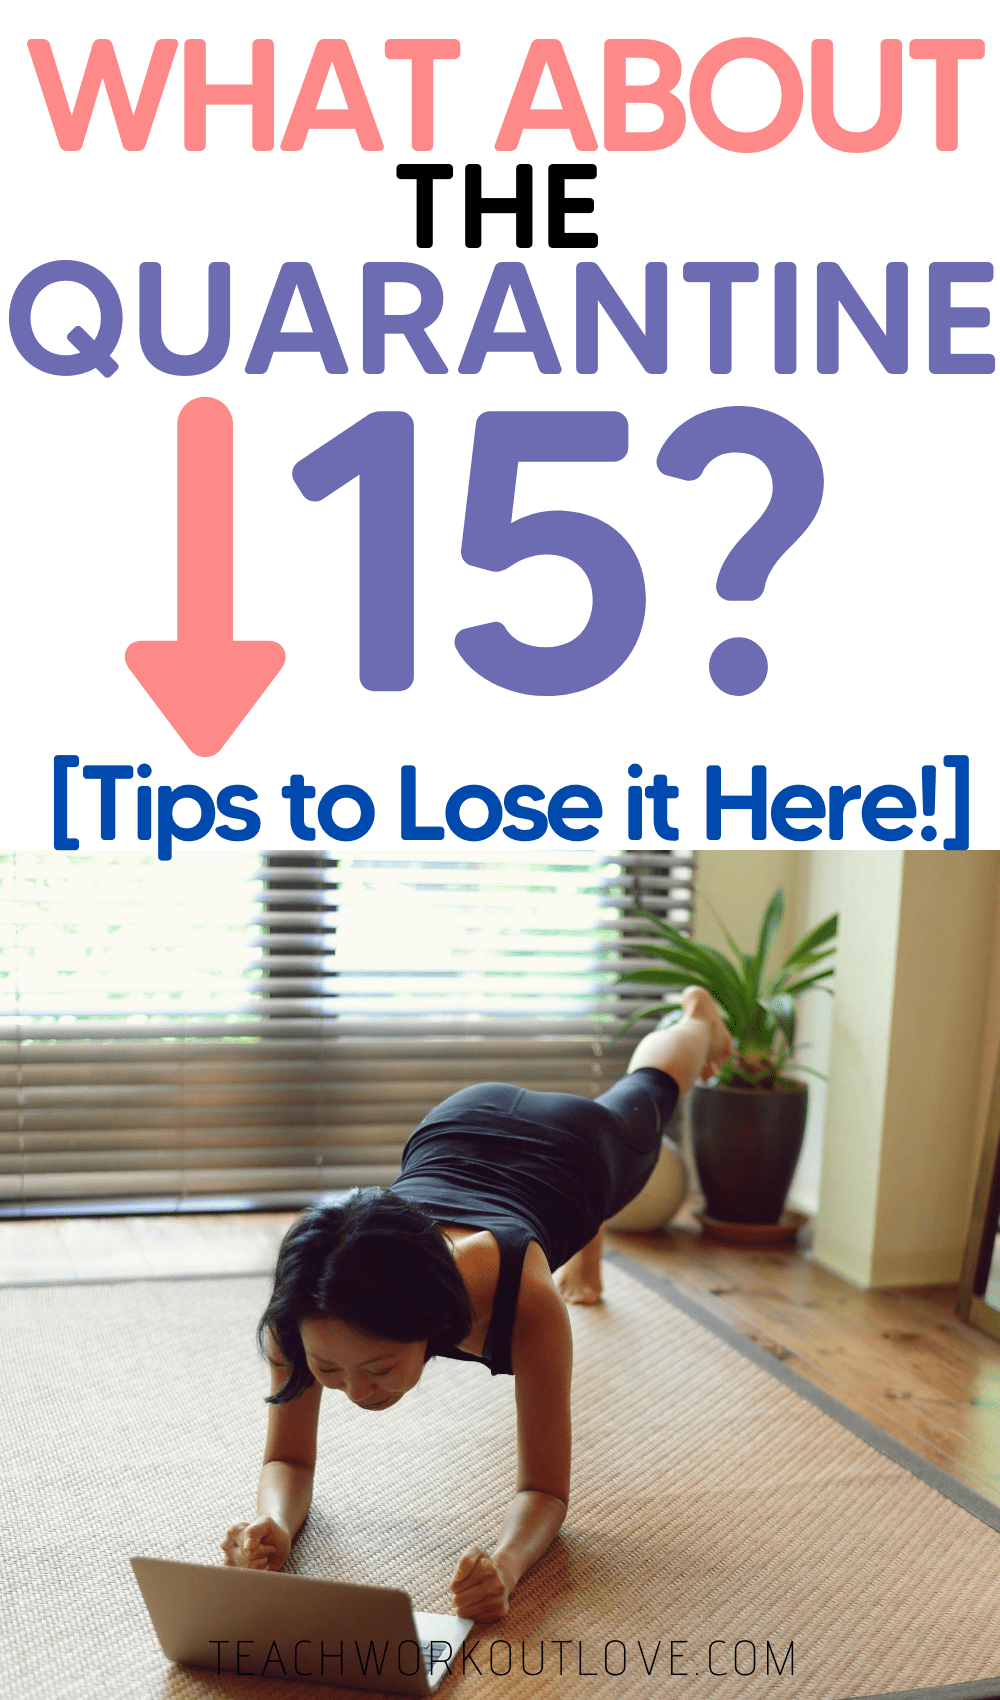 Have you gained the quarantine 15? Has the threat of Covid-19 changed things? How can you get rid of this weight? Let's find out!